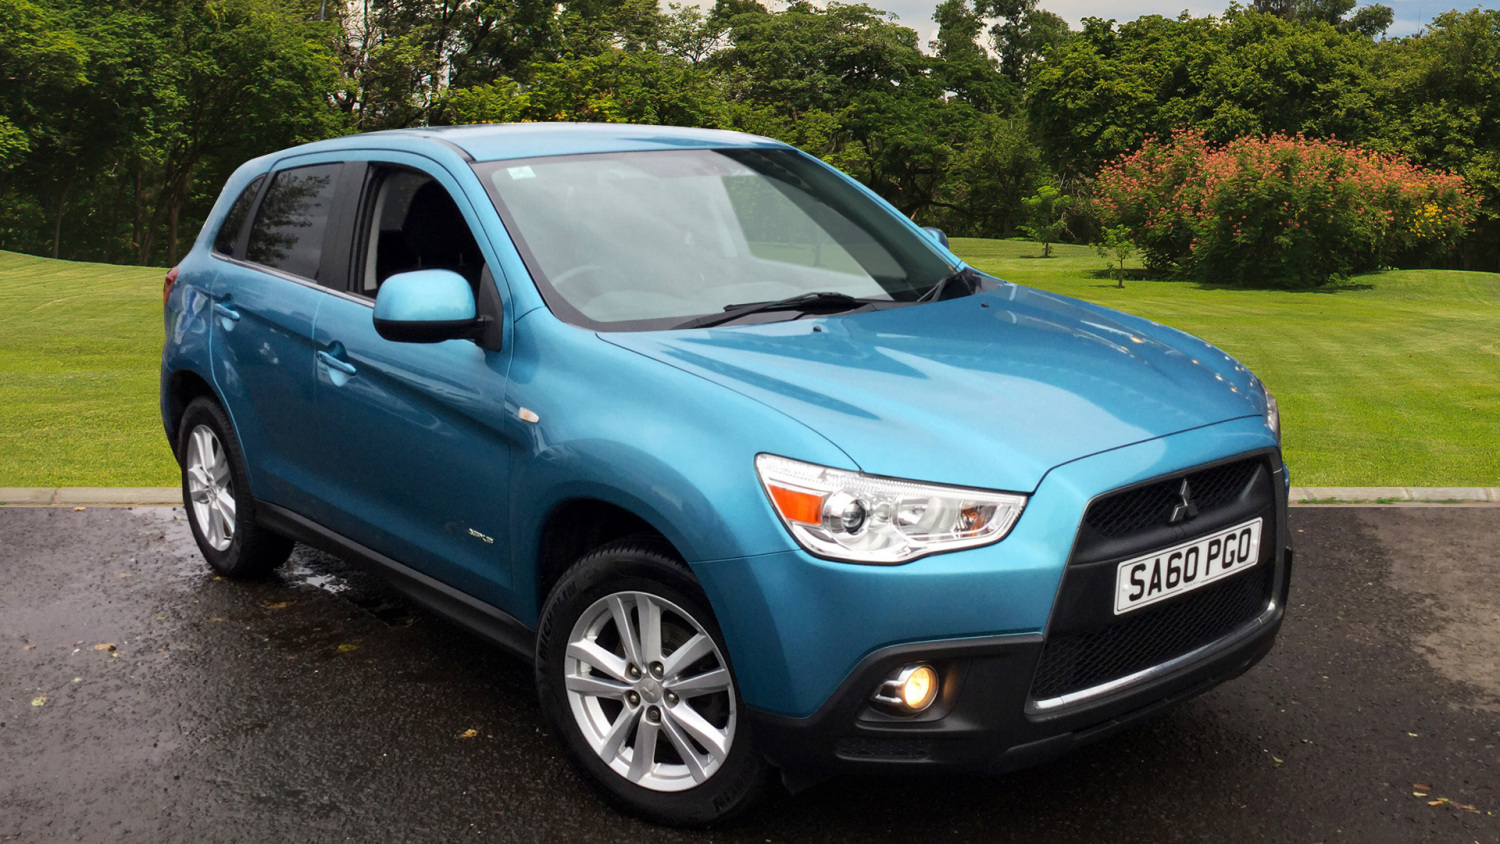 Used Mitsubishi Cars Paisley >> Used Mitsubishi Asx 1.8 3 Cleartec 5Dr Diesel Estate for Sale in Scotland | Macklin Motors